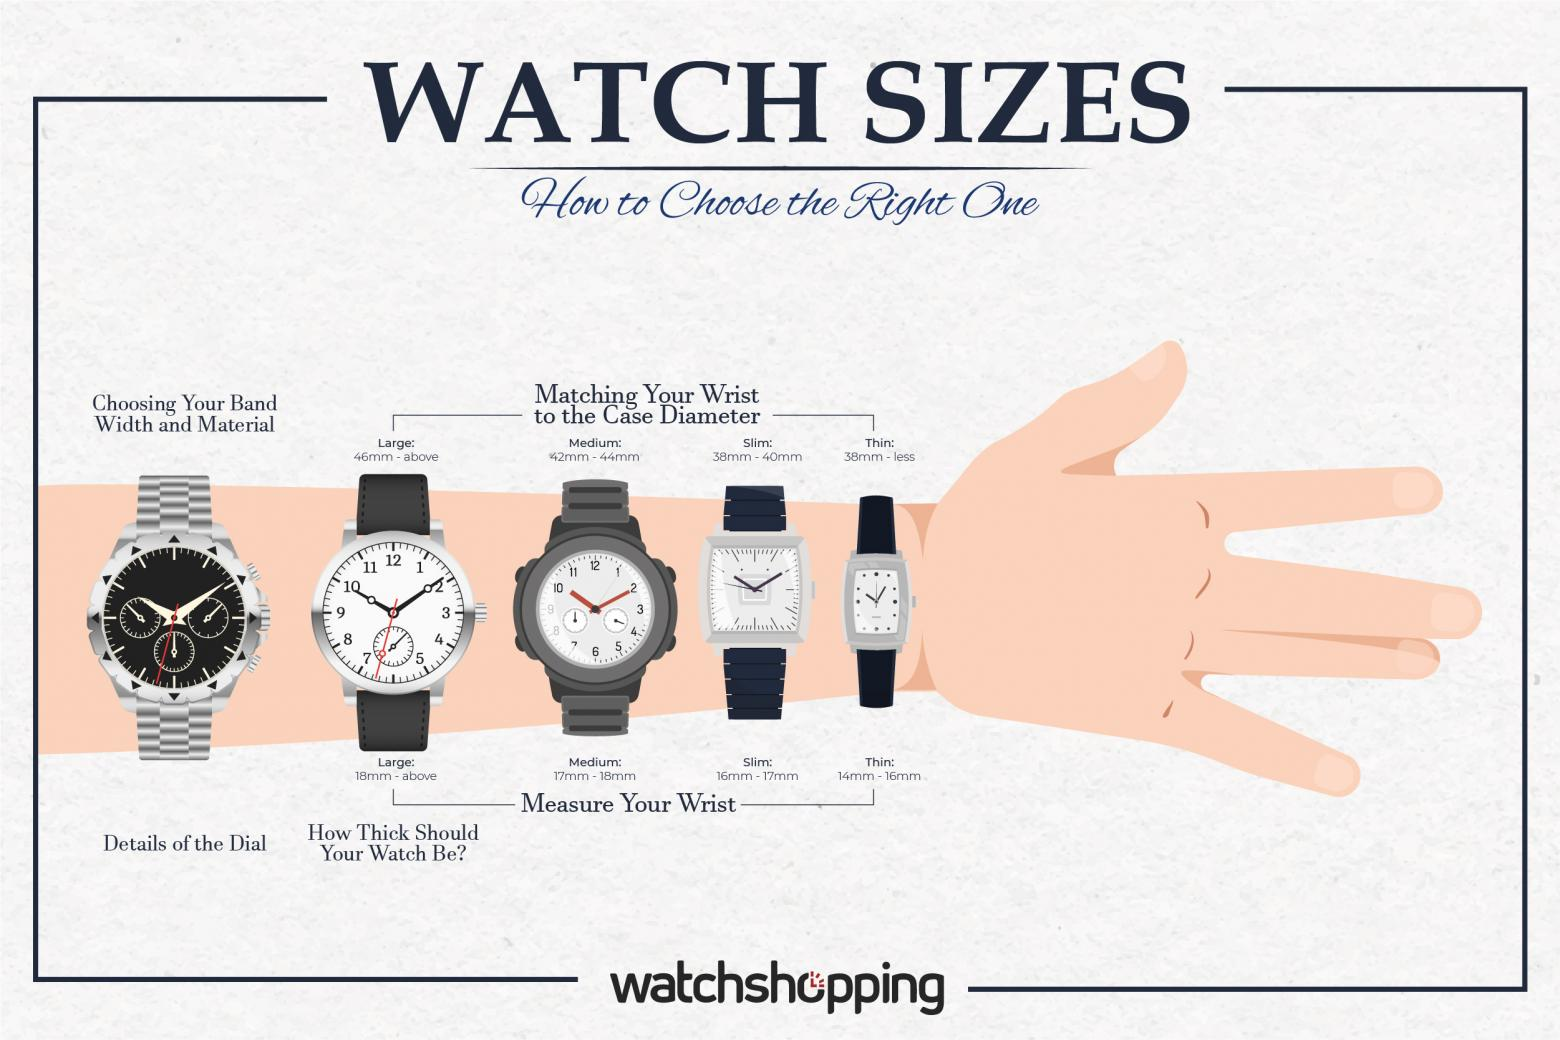 Watch Sizes: How to Choose the Right One